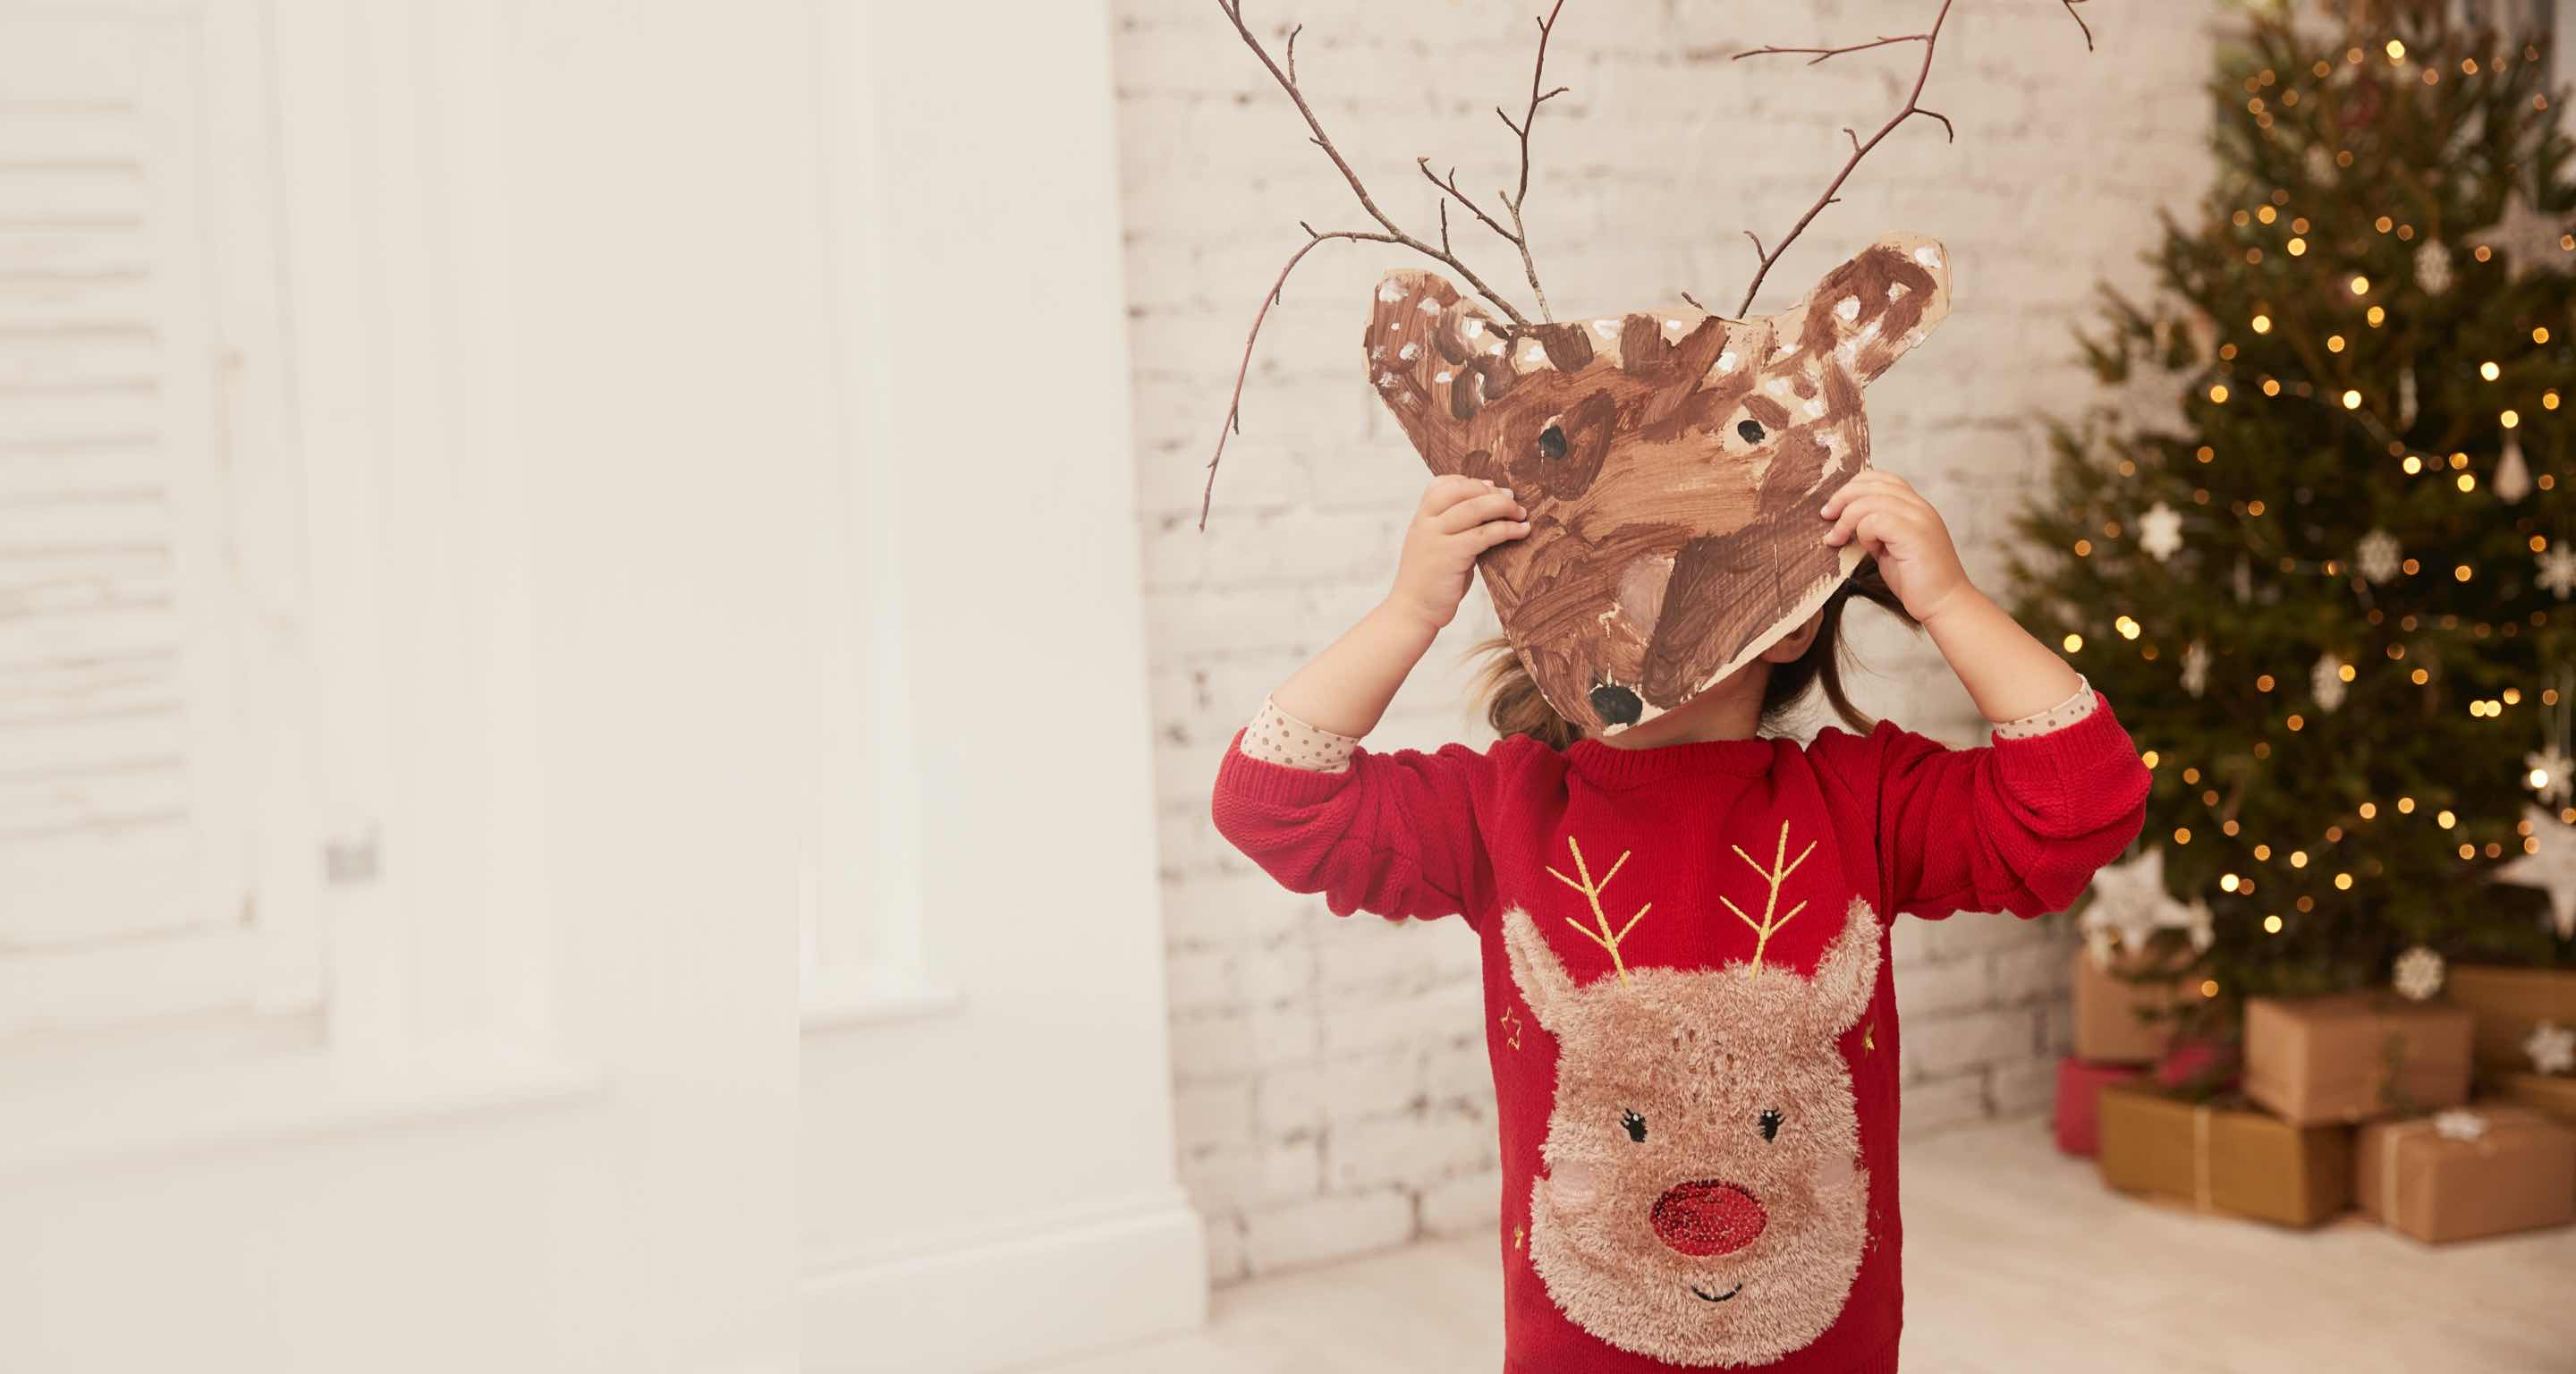 Little girl wearing a red reindeer fluffy jumper holding up a hand painted reindeer mark with twigs for antlers.